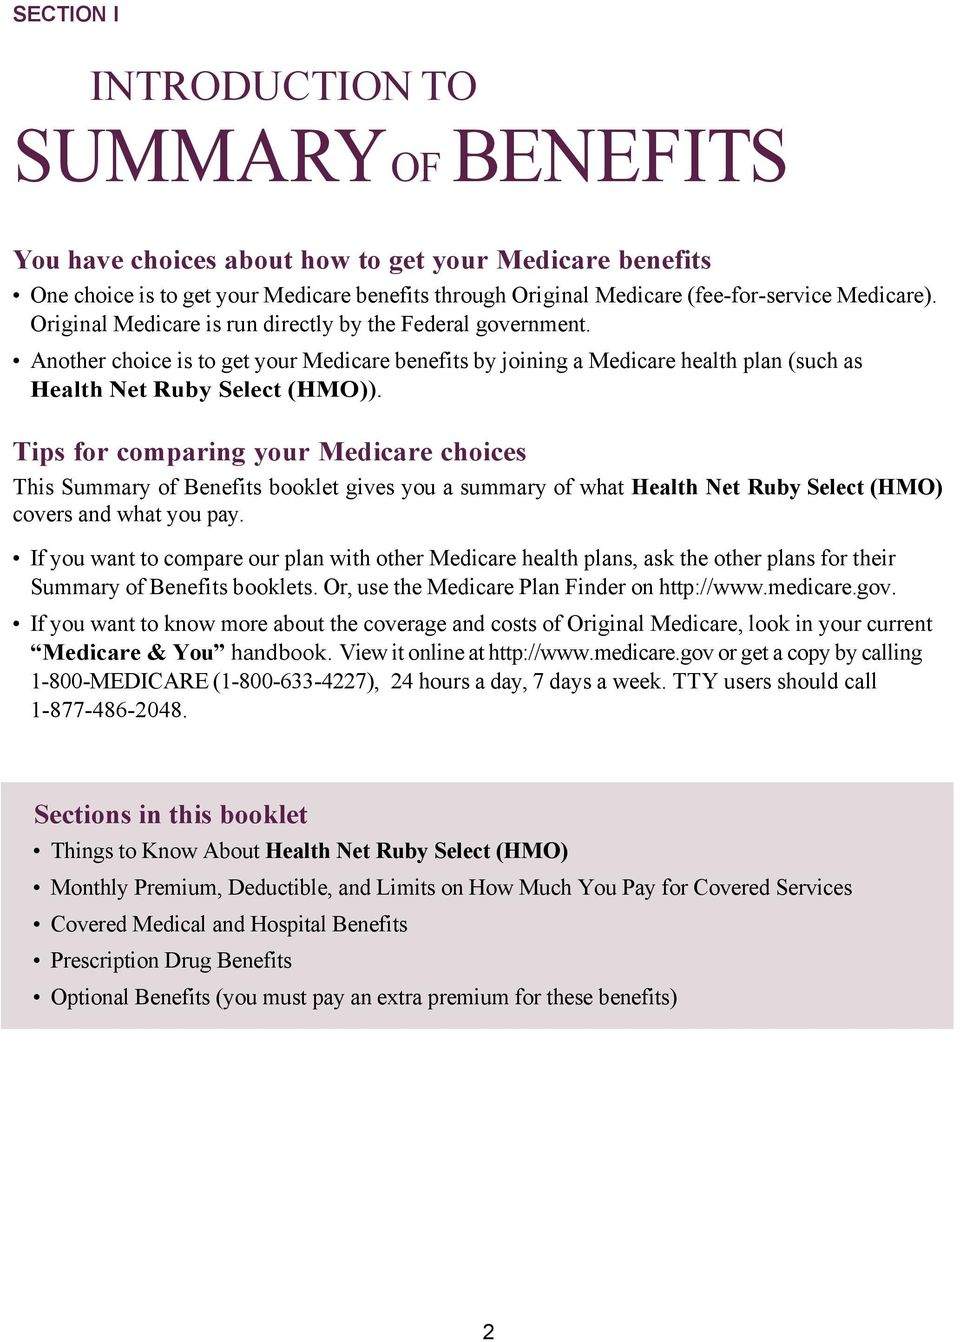 Tips for comparing your Medicare choices This Summary of Benefits booklet gives you a summary of what Health Net Ruby Select (HMO) covers and what you pay.